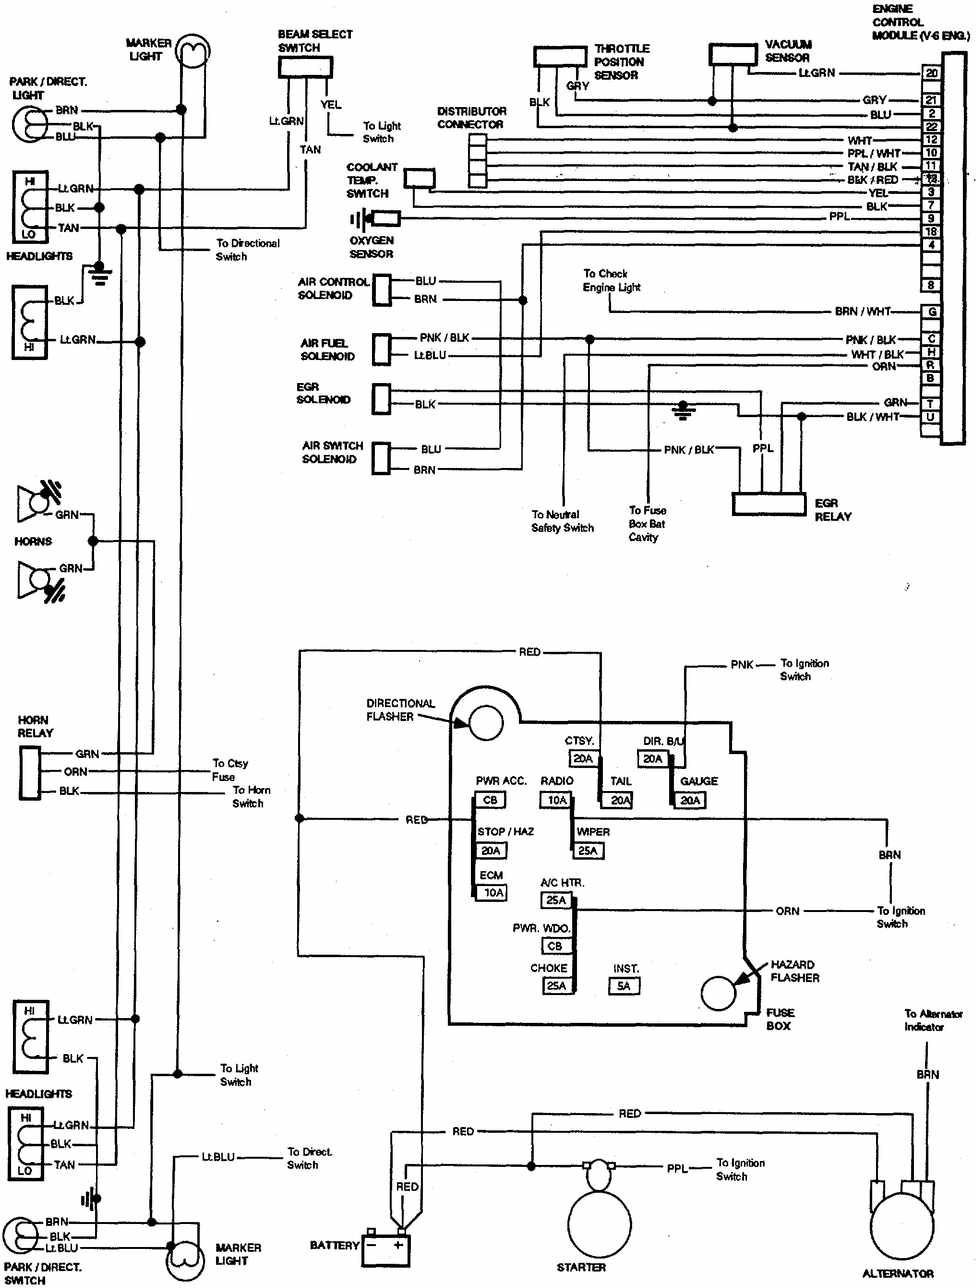 1988 chevrolet corvette wiring diagram